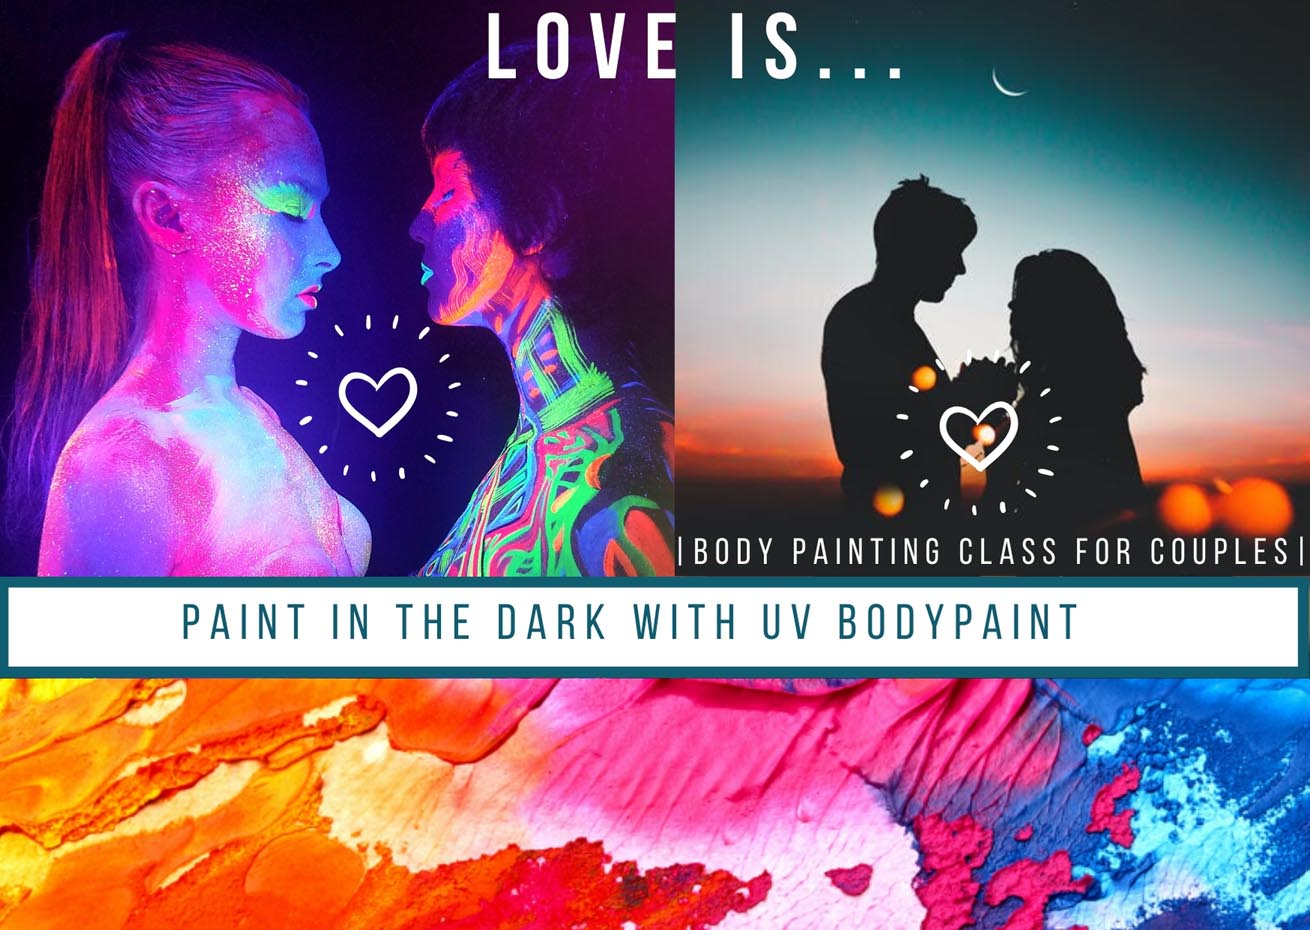 Unforgettable romantic experience for couples! A body painting class for couples in San Diego CA. A romantic and playful date activity where couples paint each other in a dark studio lit by black lights.